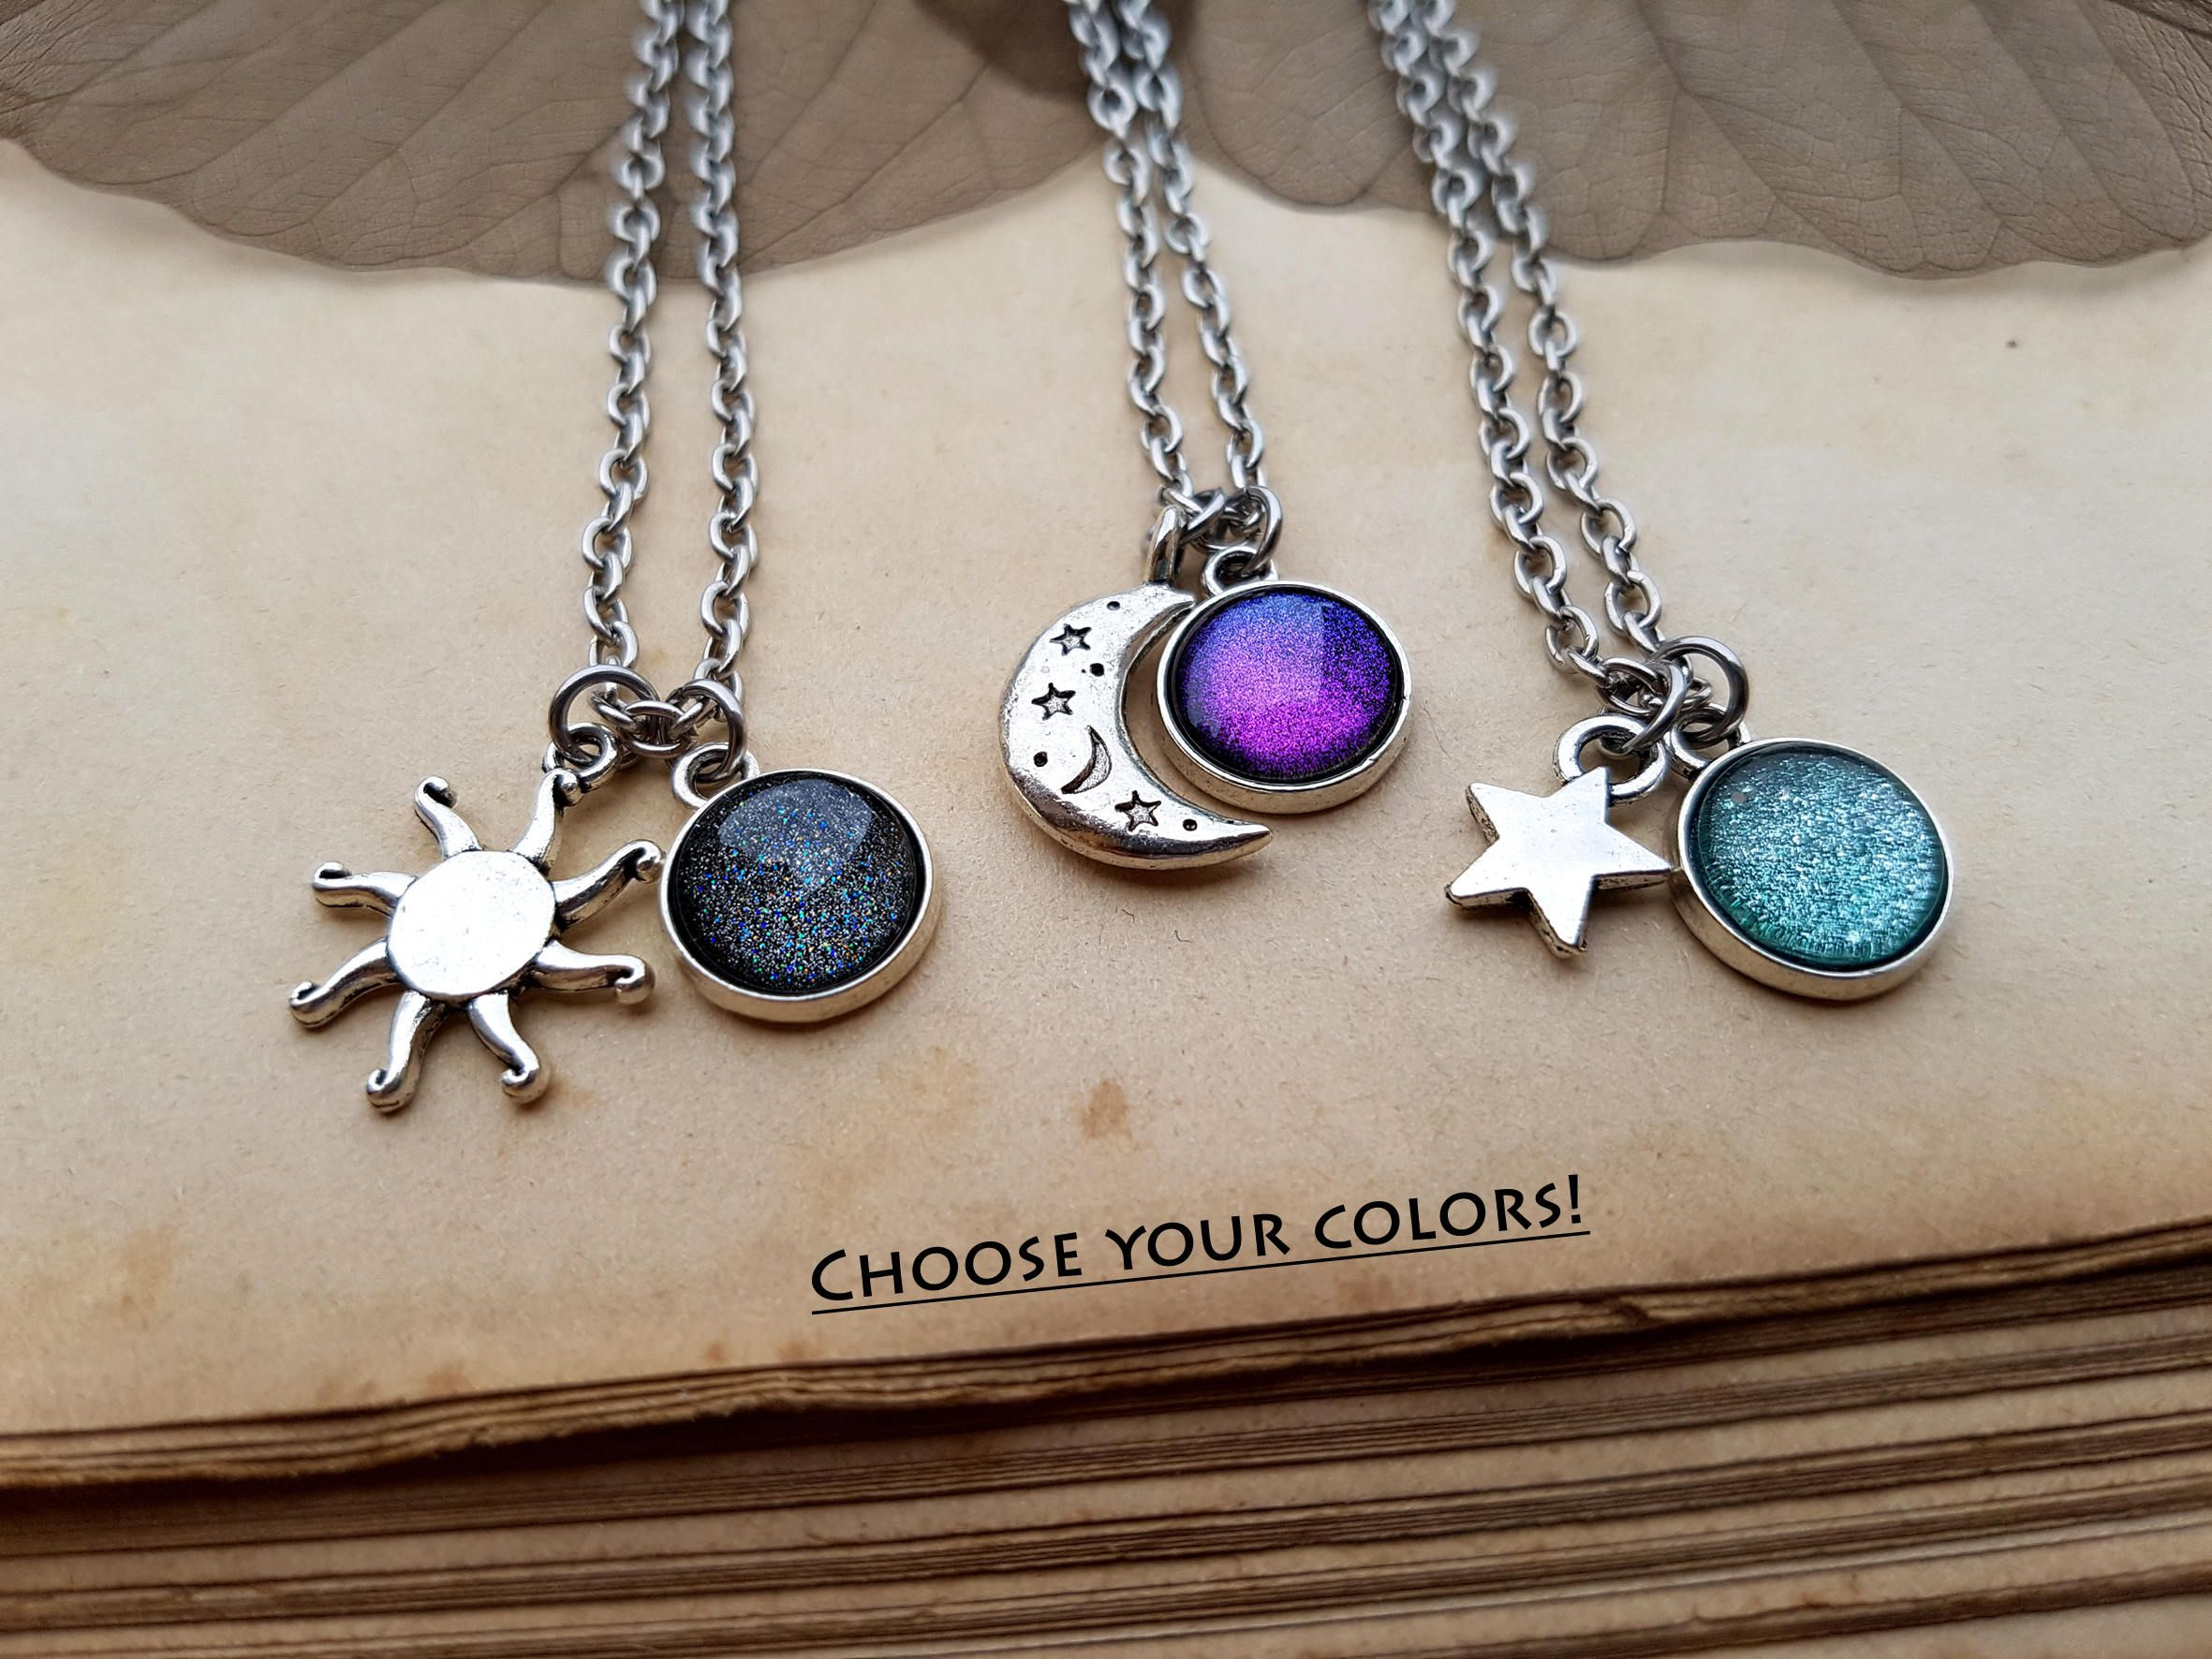 necklace sisters gift bff best moon jewelry necklaces sun star matching friends pin